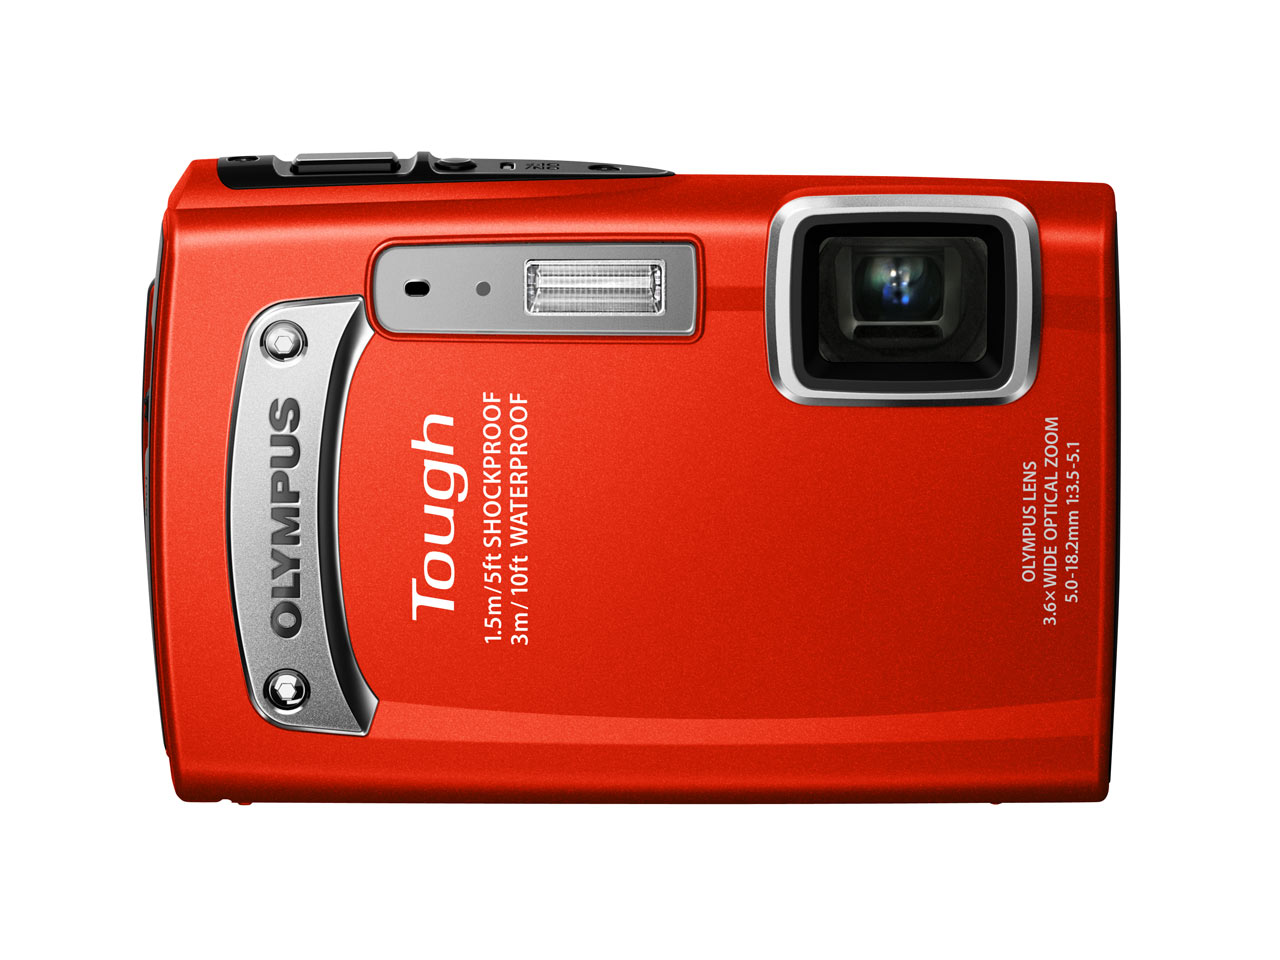 Olympus launches TG-320 rugged compact: Digital Photography